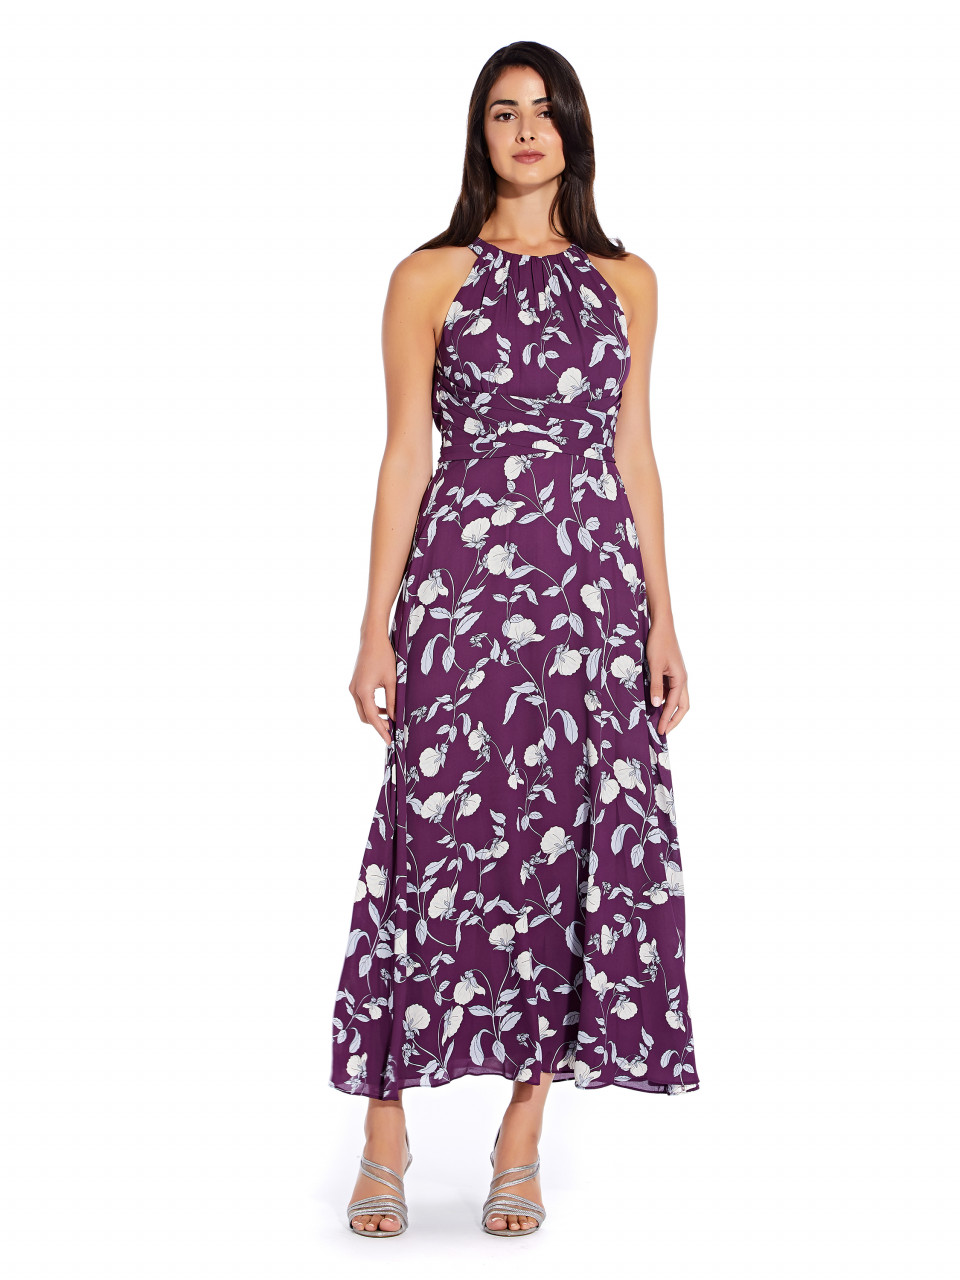 Botanical halter maxi dress